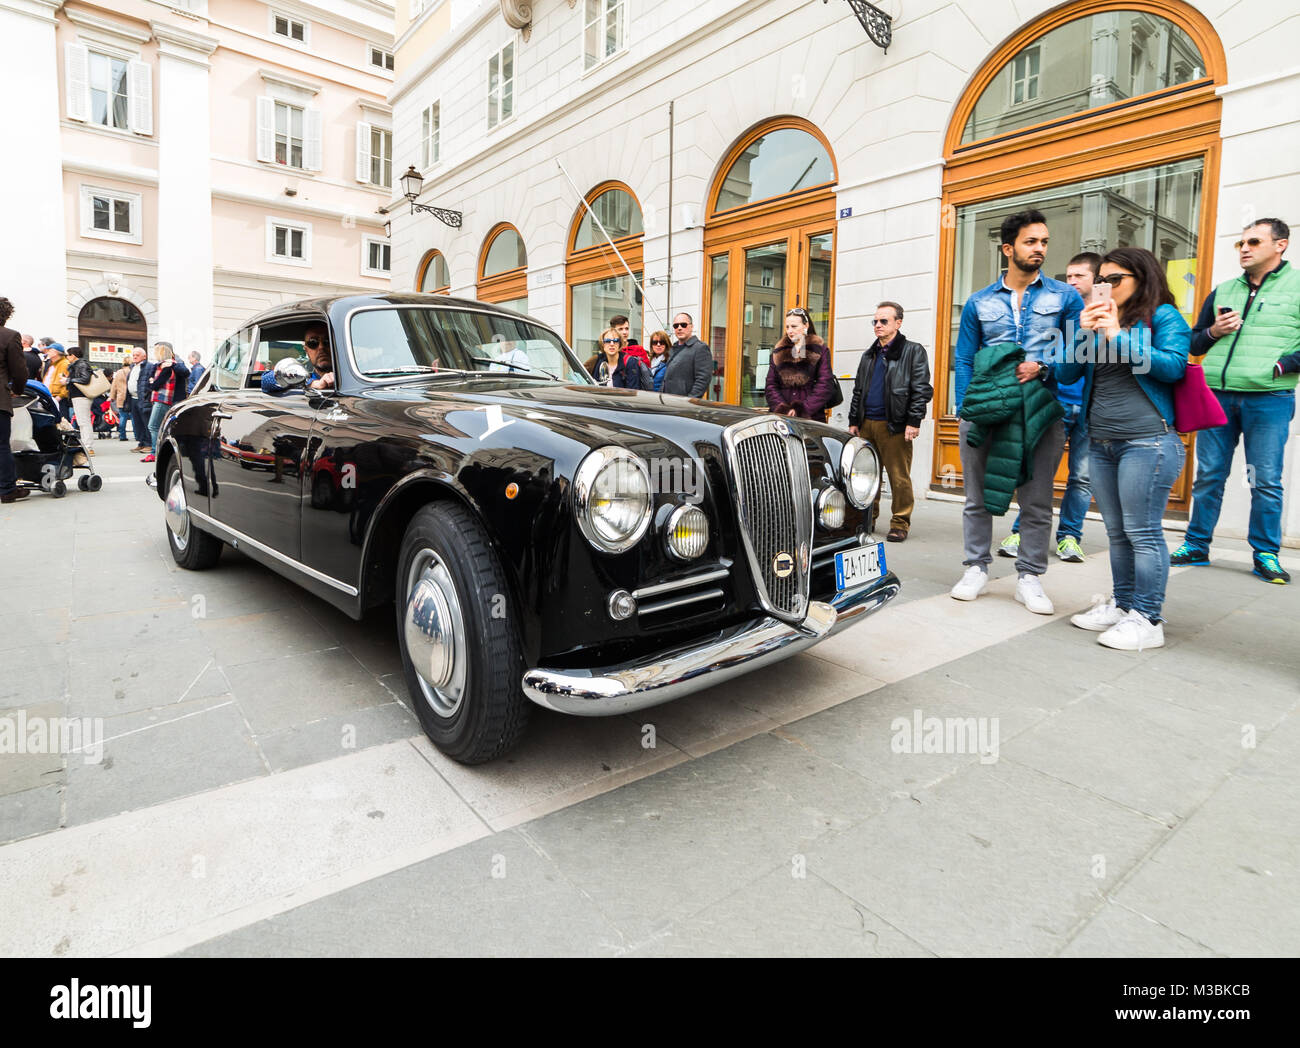 TRIESTE, ITALY - APRIL 3: Photo of Lancia Aurelia b20 on the Trieste Opicina Historic. APRIL 3, 2016. Trieste Opicina - Stock Image